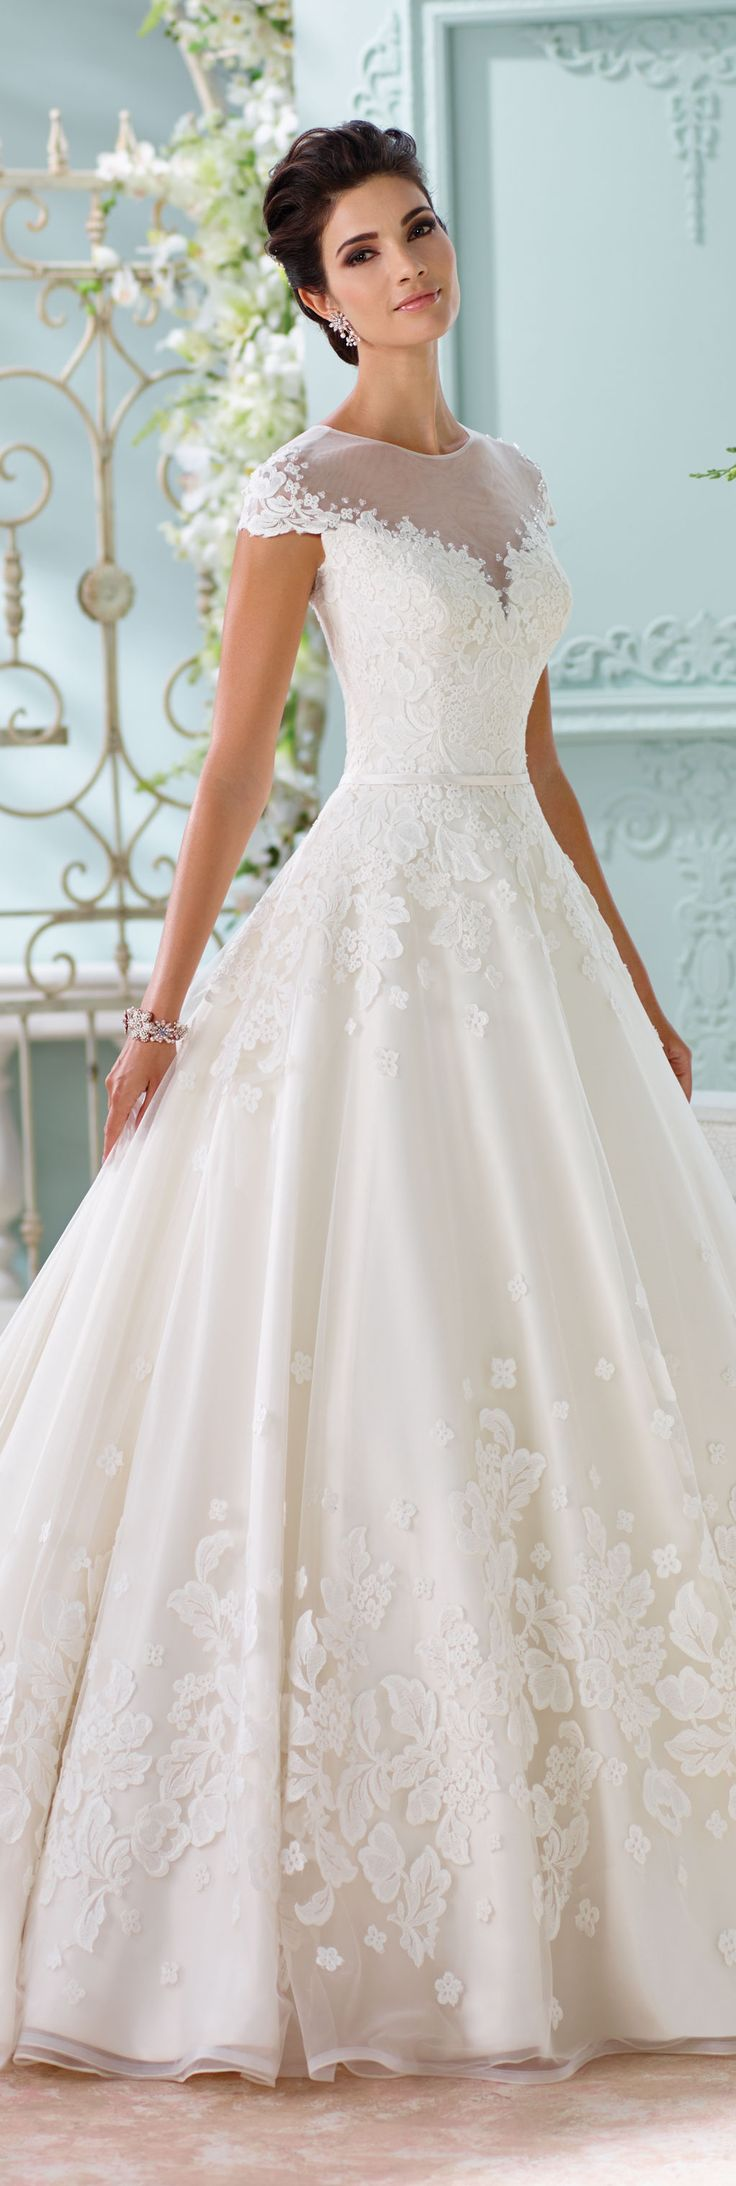 The David Tutera for Mon Cheri Spring 2016 Wedding Gown Collection - Style No. 116213 Lene #weddingdresseswithsleeves